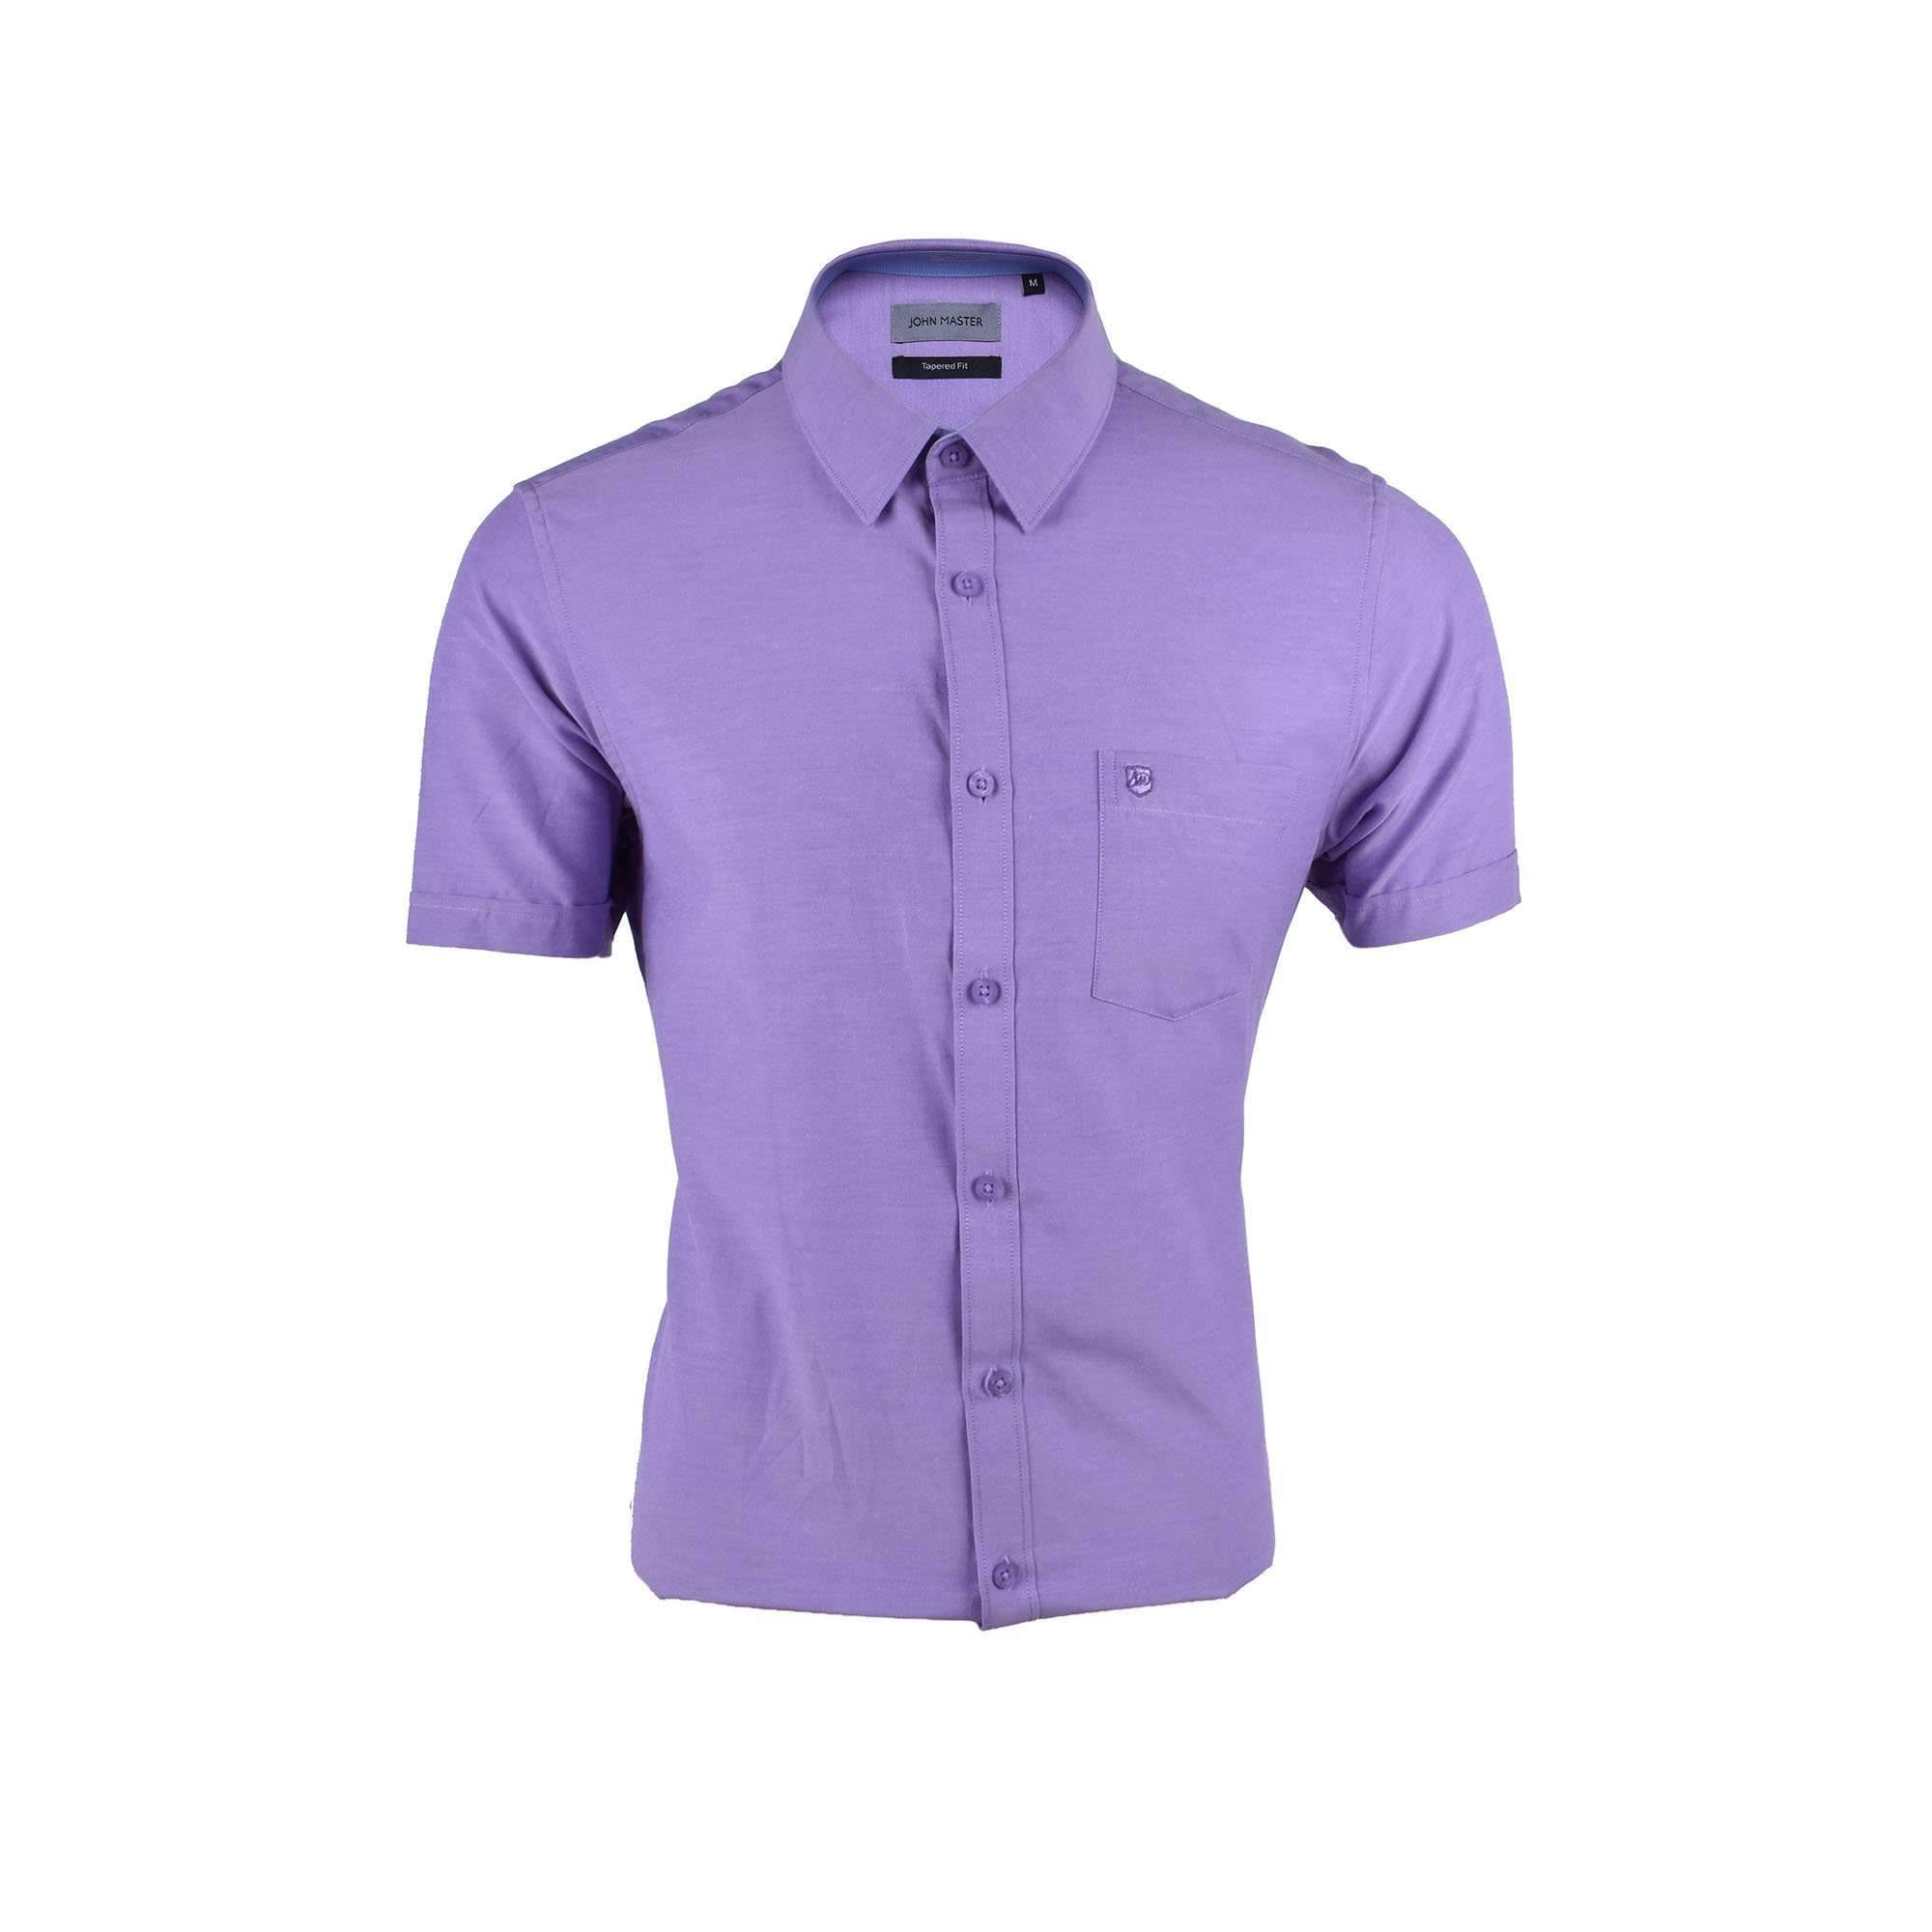 John Master Basic Eseential Short Sleeve Shirt Medium Purple 7267001 : Buy John Master online at CMG.MY